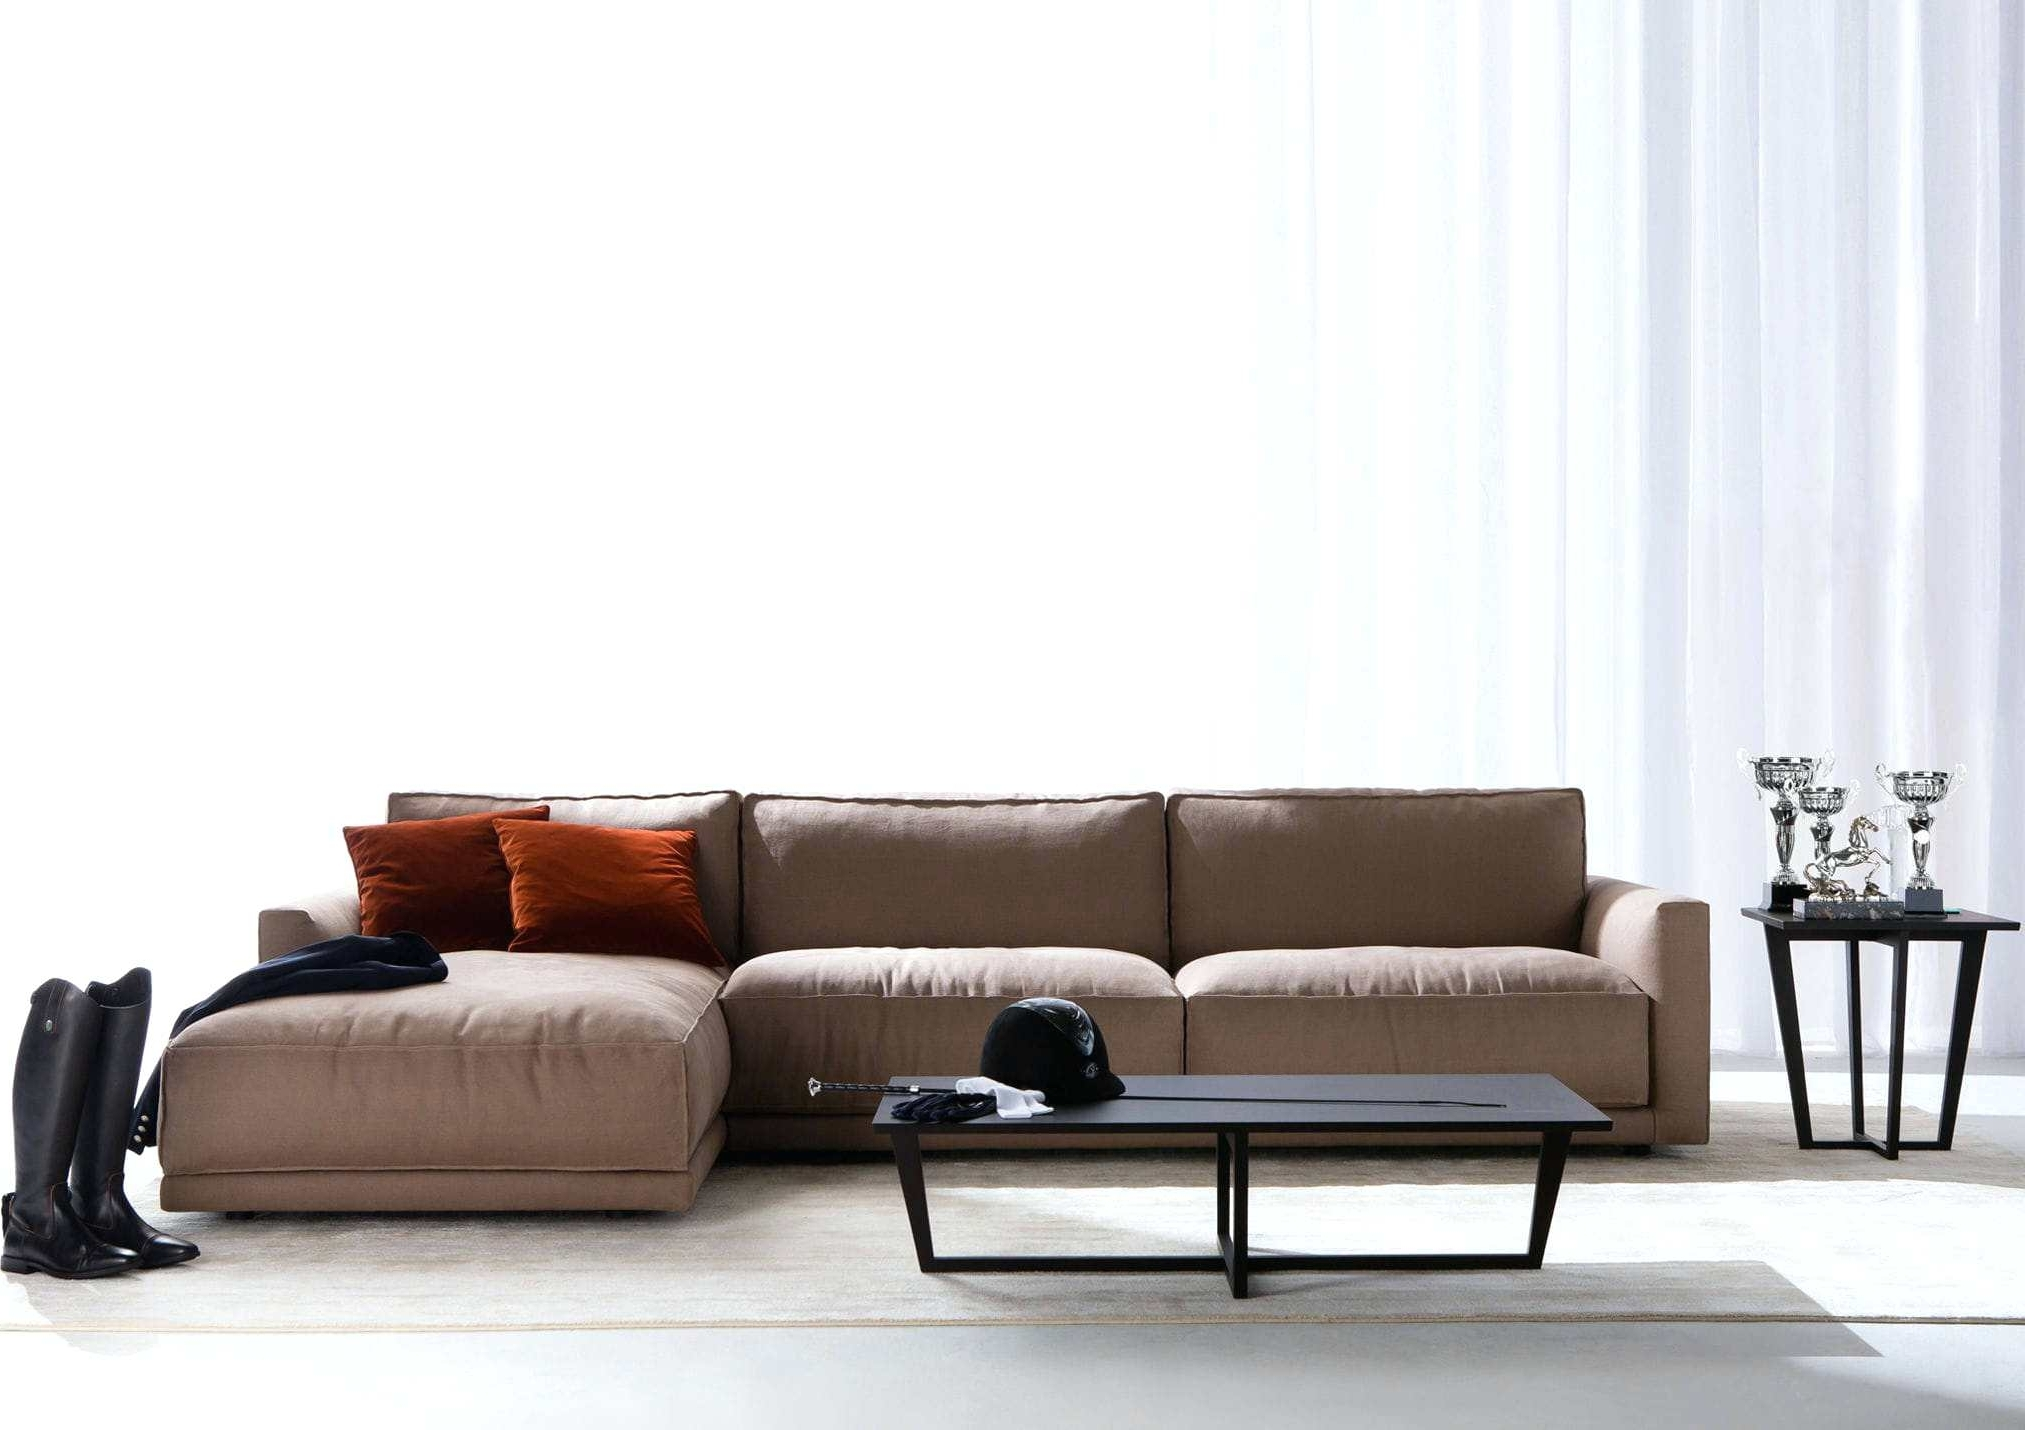 Widely Used Contemporaryther Furniture High Point Nc Modern Sofas And Inside High Point Nc Sectional Sofas (View 2 of 20)